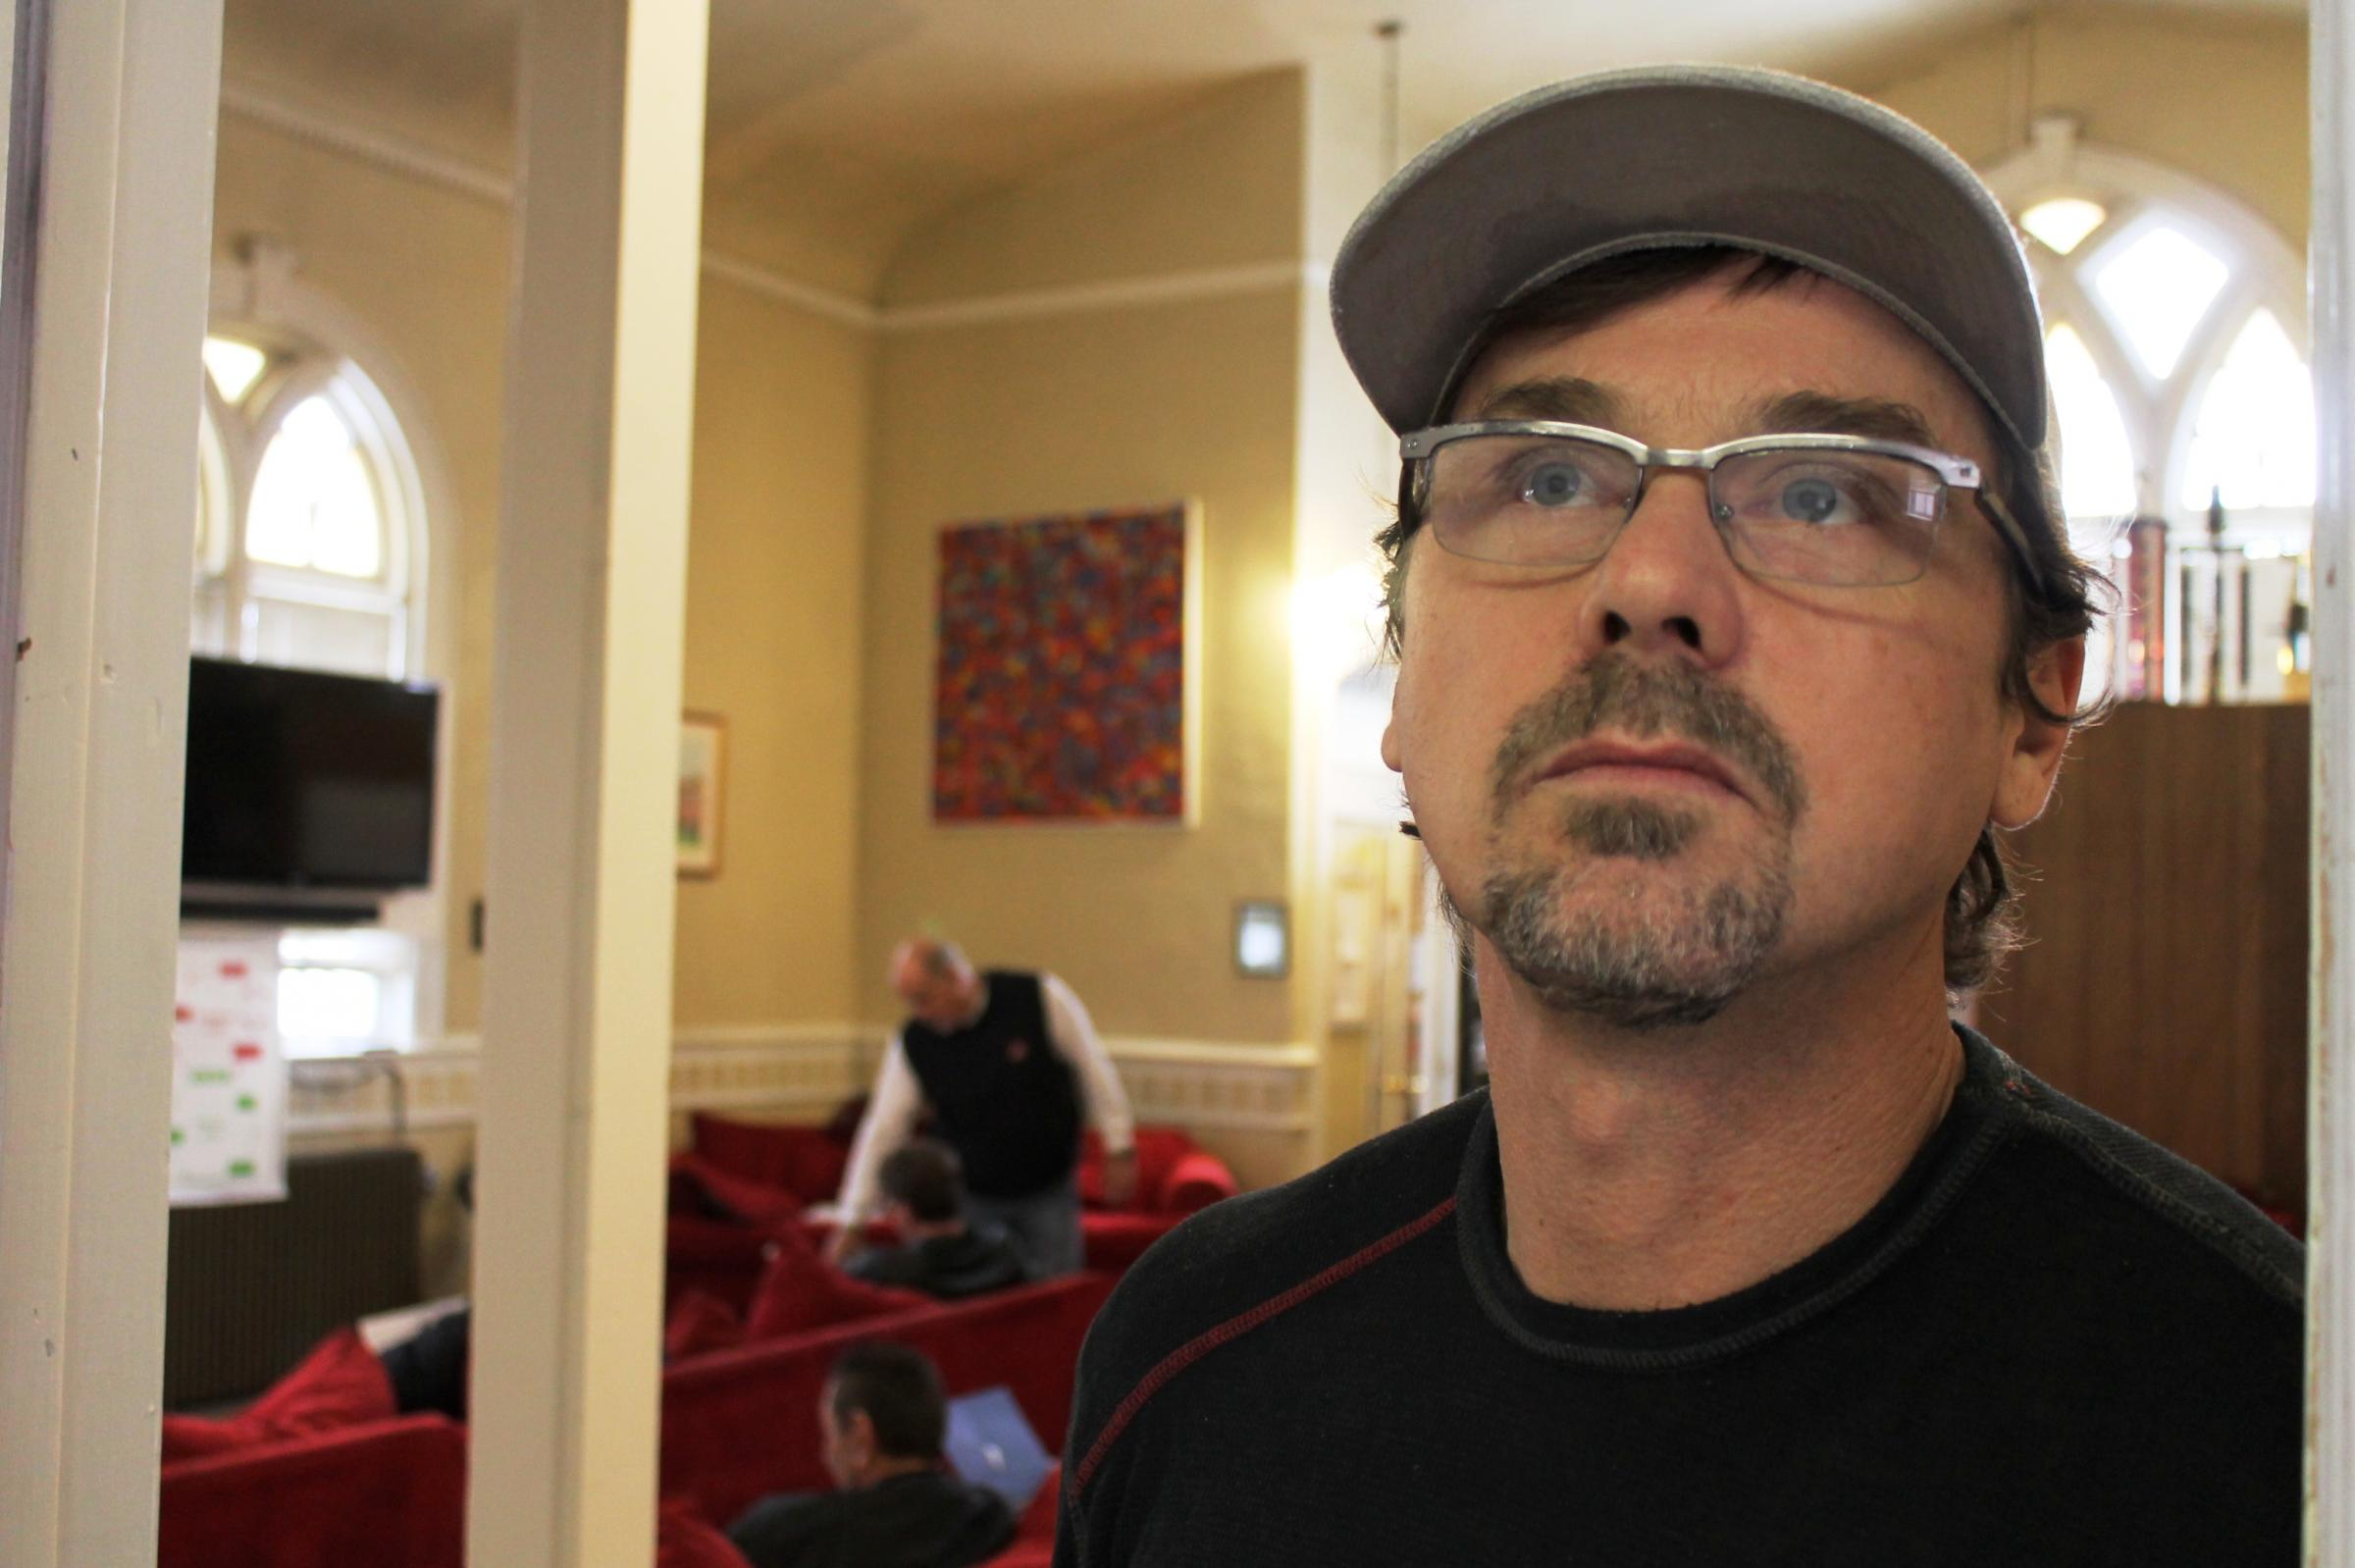 salt lake city man in recovery from heroin addiction falls insalt lake city man works to overcome heroin addiction at first step house